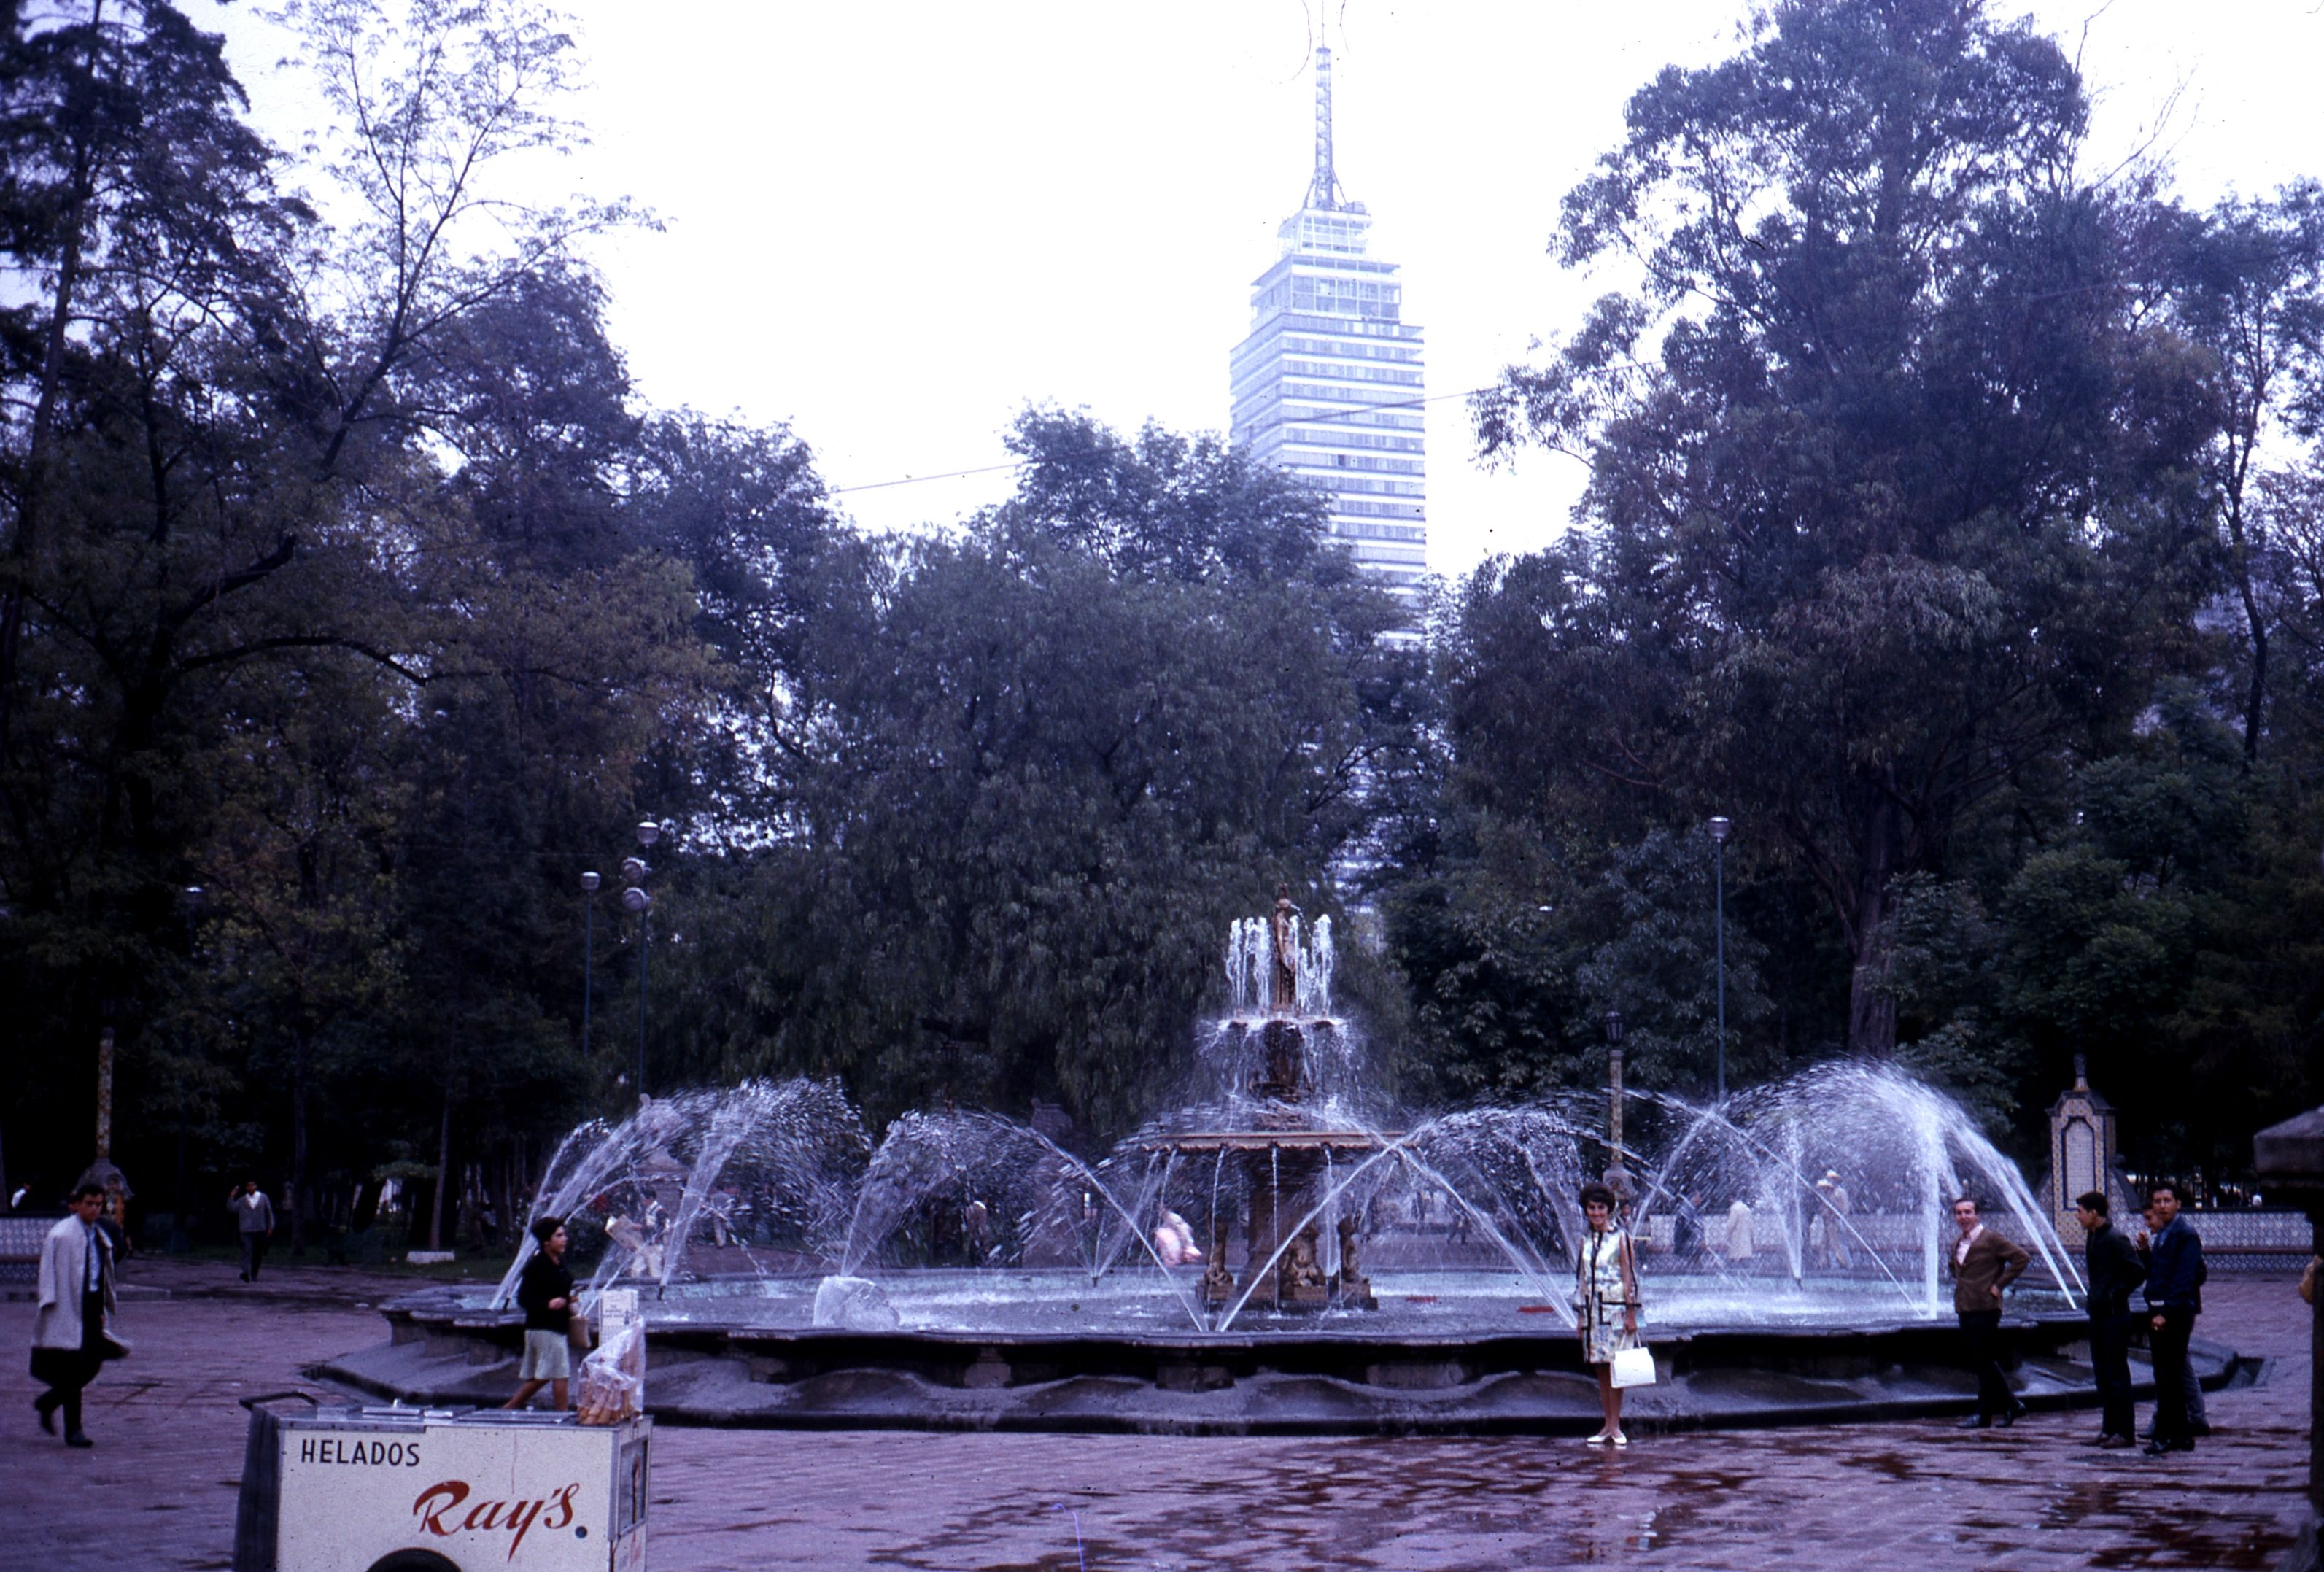 Alameda Park with fountain and Empire State Building look alike